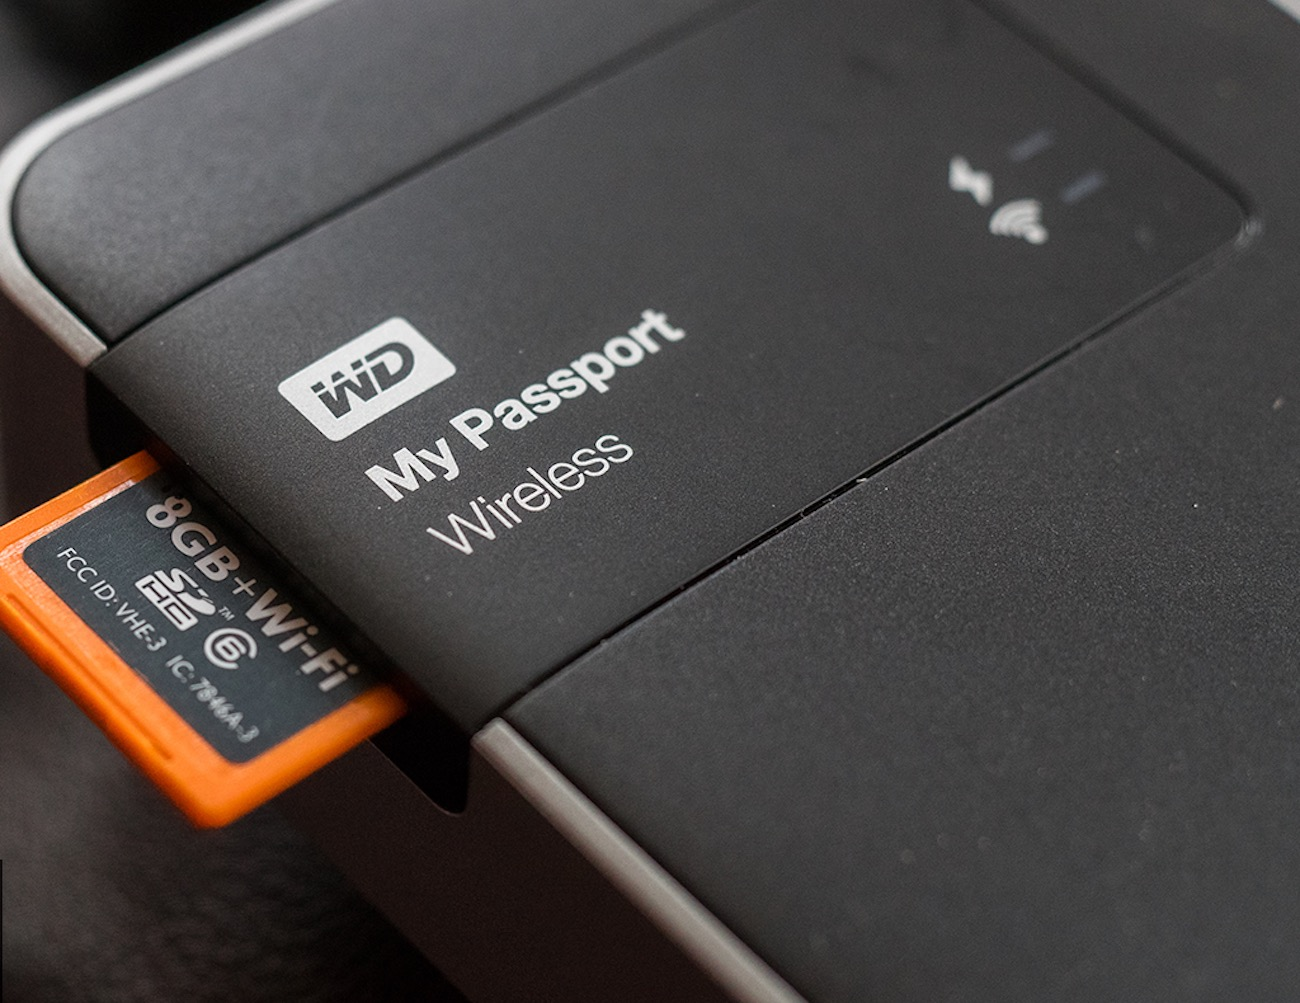 WD My Passport 2TB Wireless Hard Drive